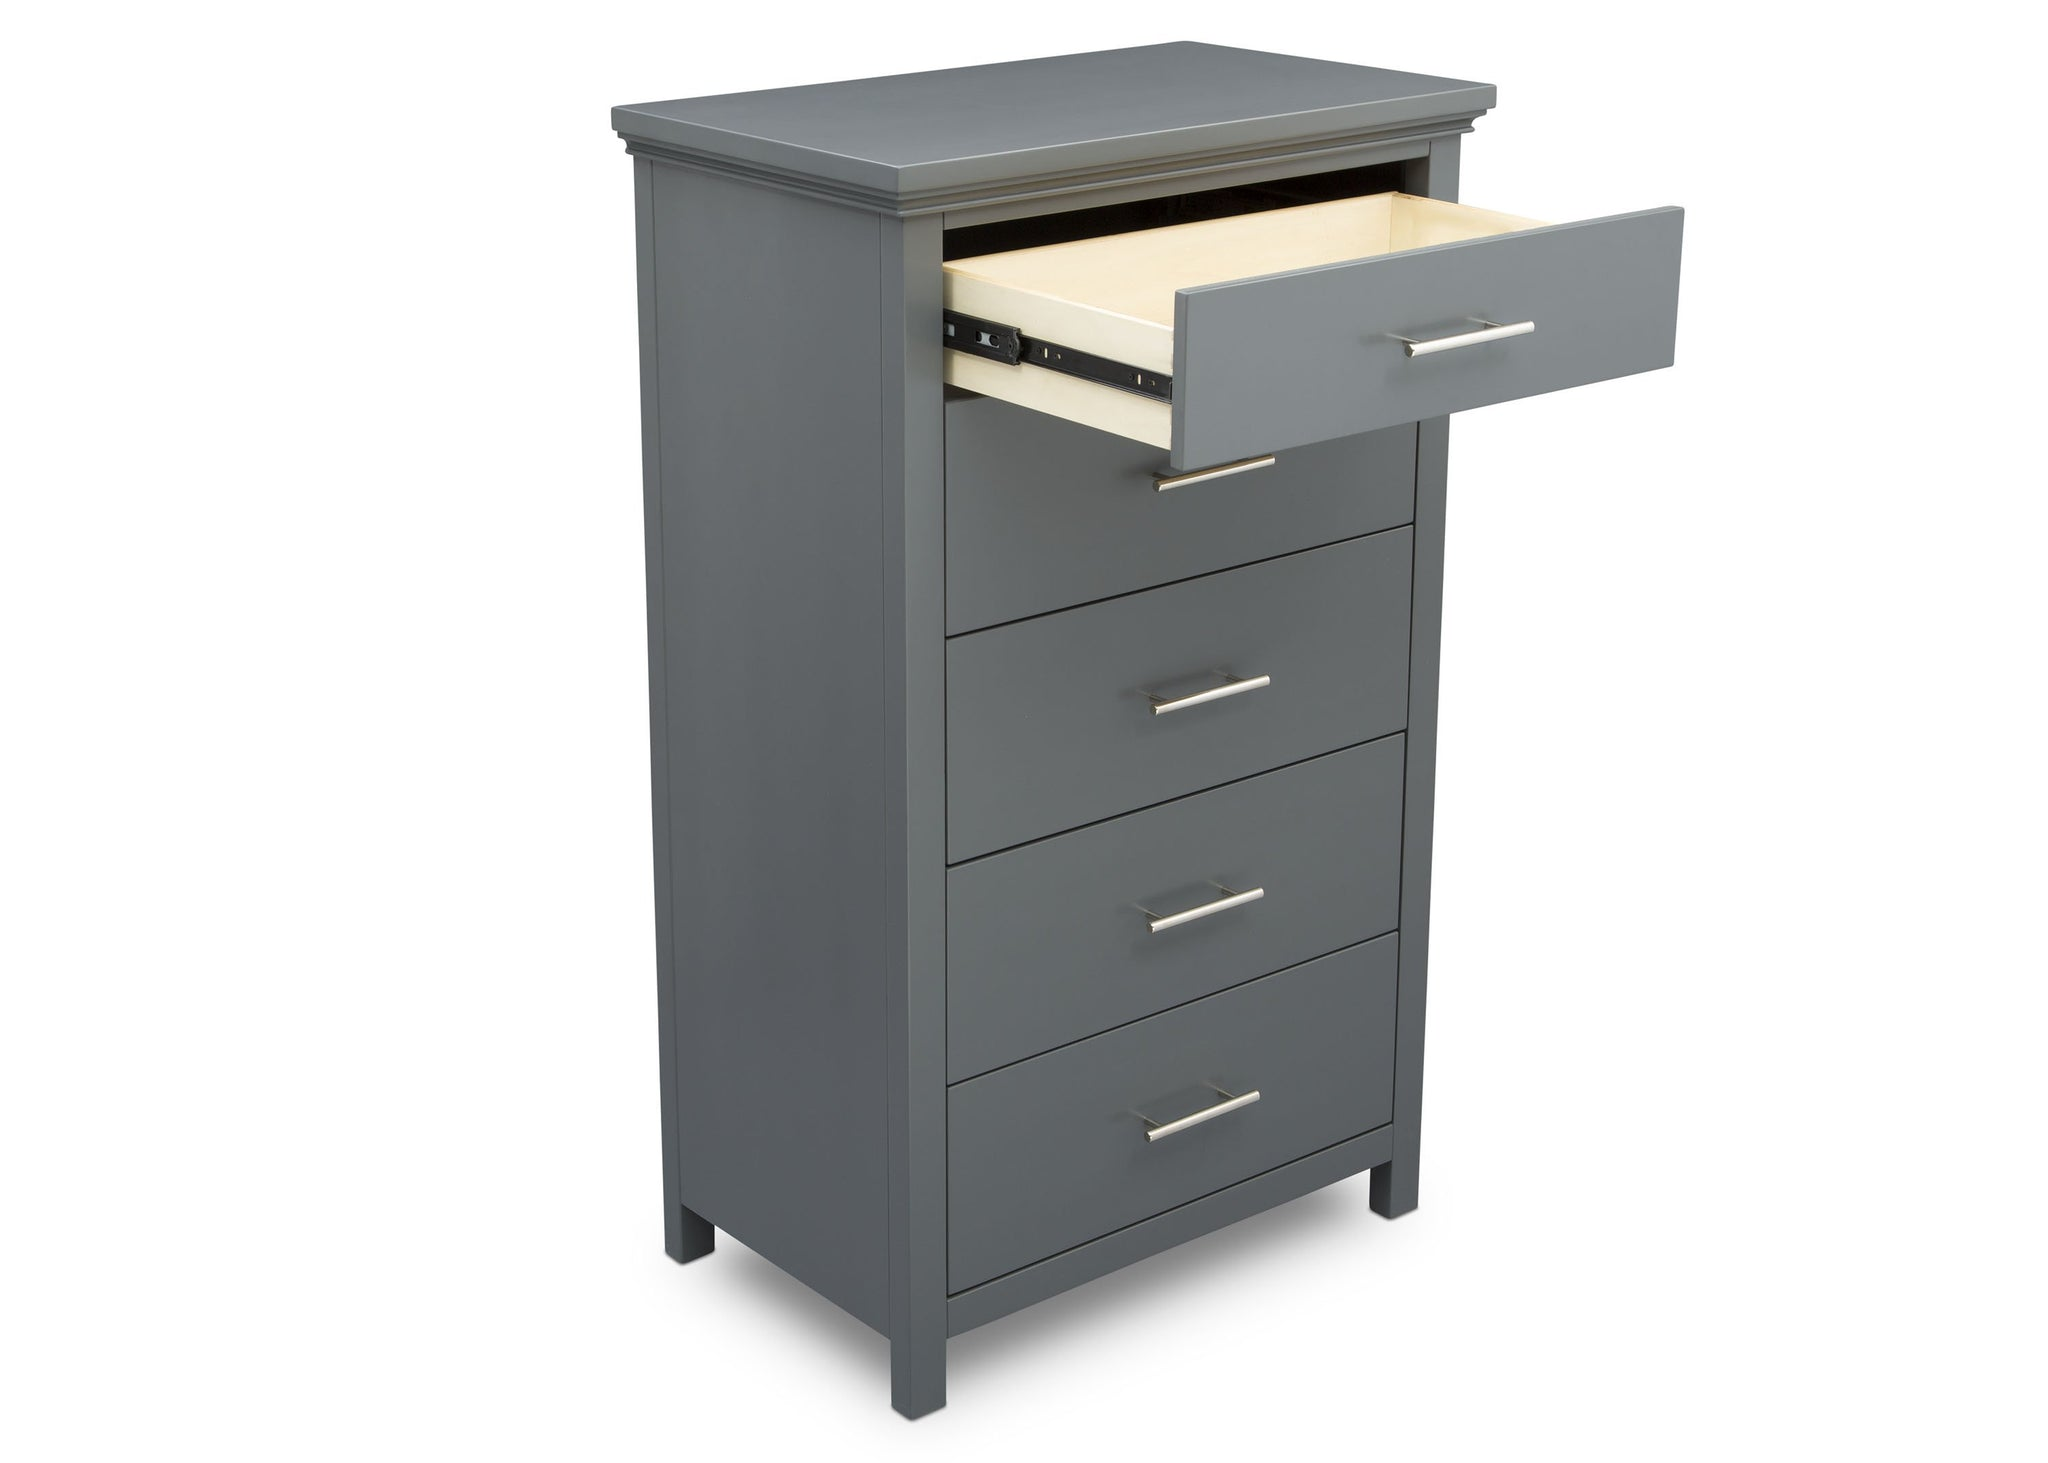 Delta Children Charcoal Grey (029) Avery 5 Drawer Chest (708050), Detail, a4a